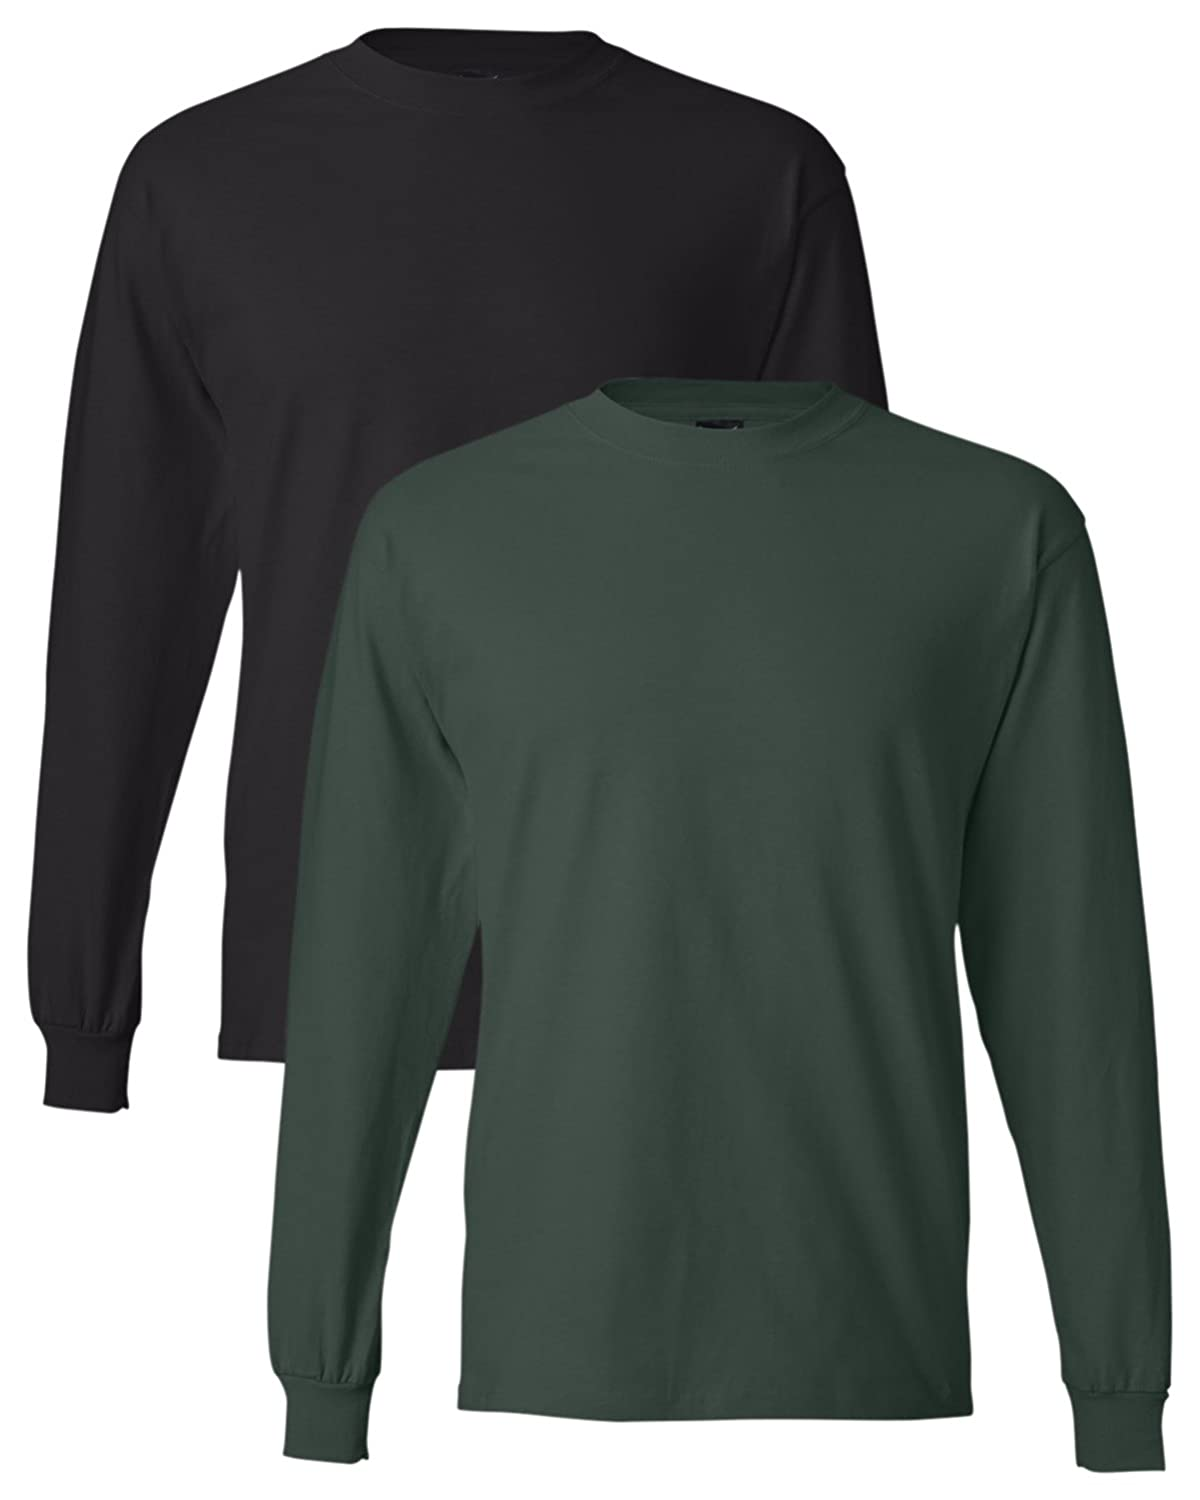 14807cd7 Hanes Men's Long-Sleeve Beefy-T Shirt (Pack of 2) at Amazon Men's Clothing  store: